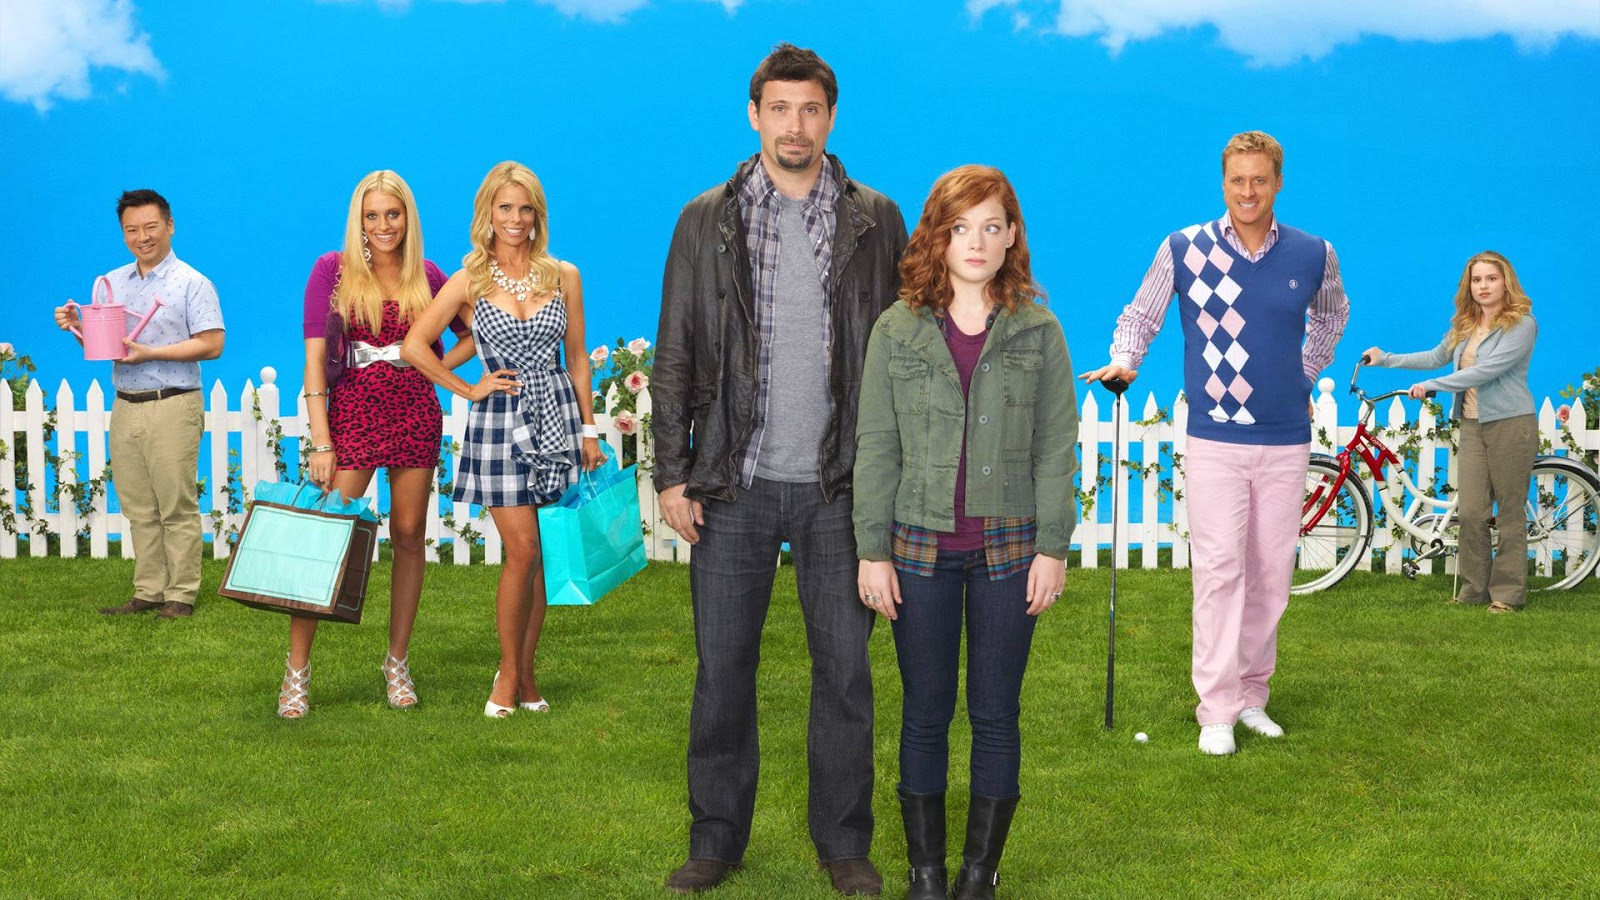 TV Show Review: Suburgatory (2011 - 2014)